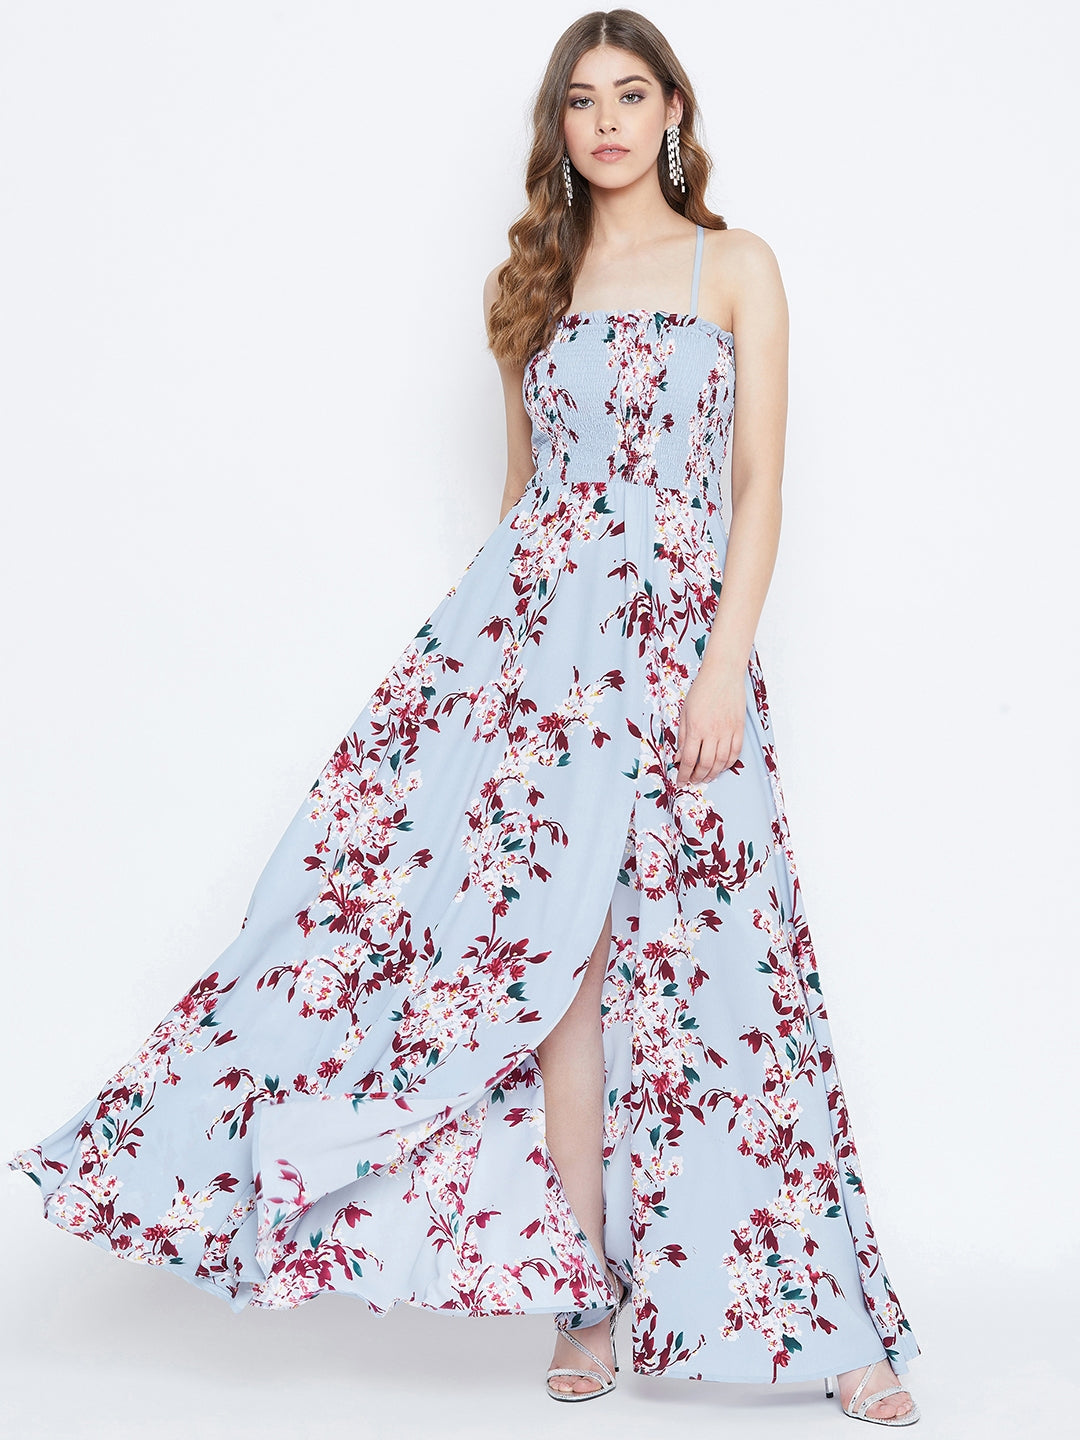 Berrylush Women Blue Floral Print Shoulder Strap Smocked Maxi Dress